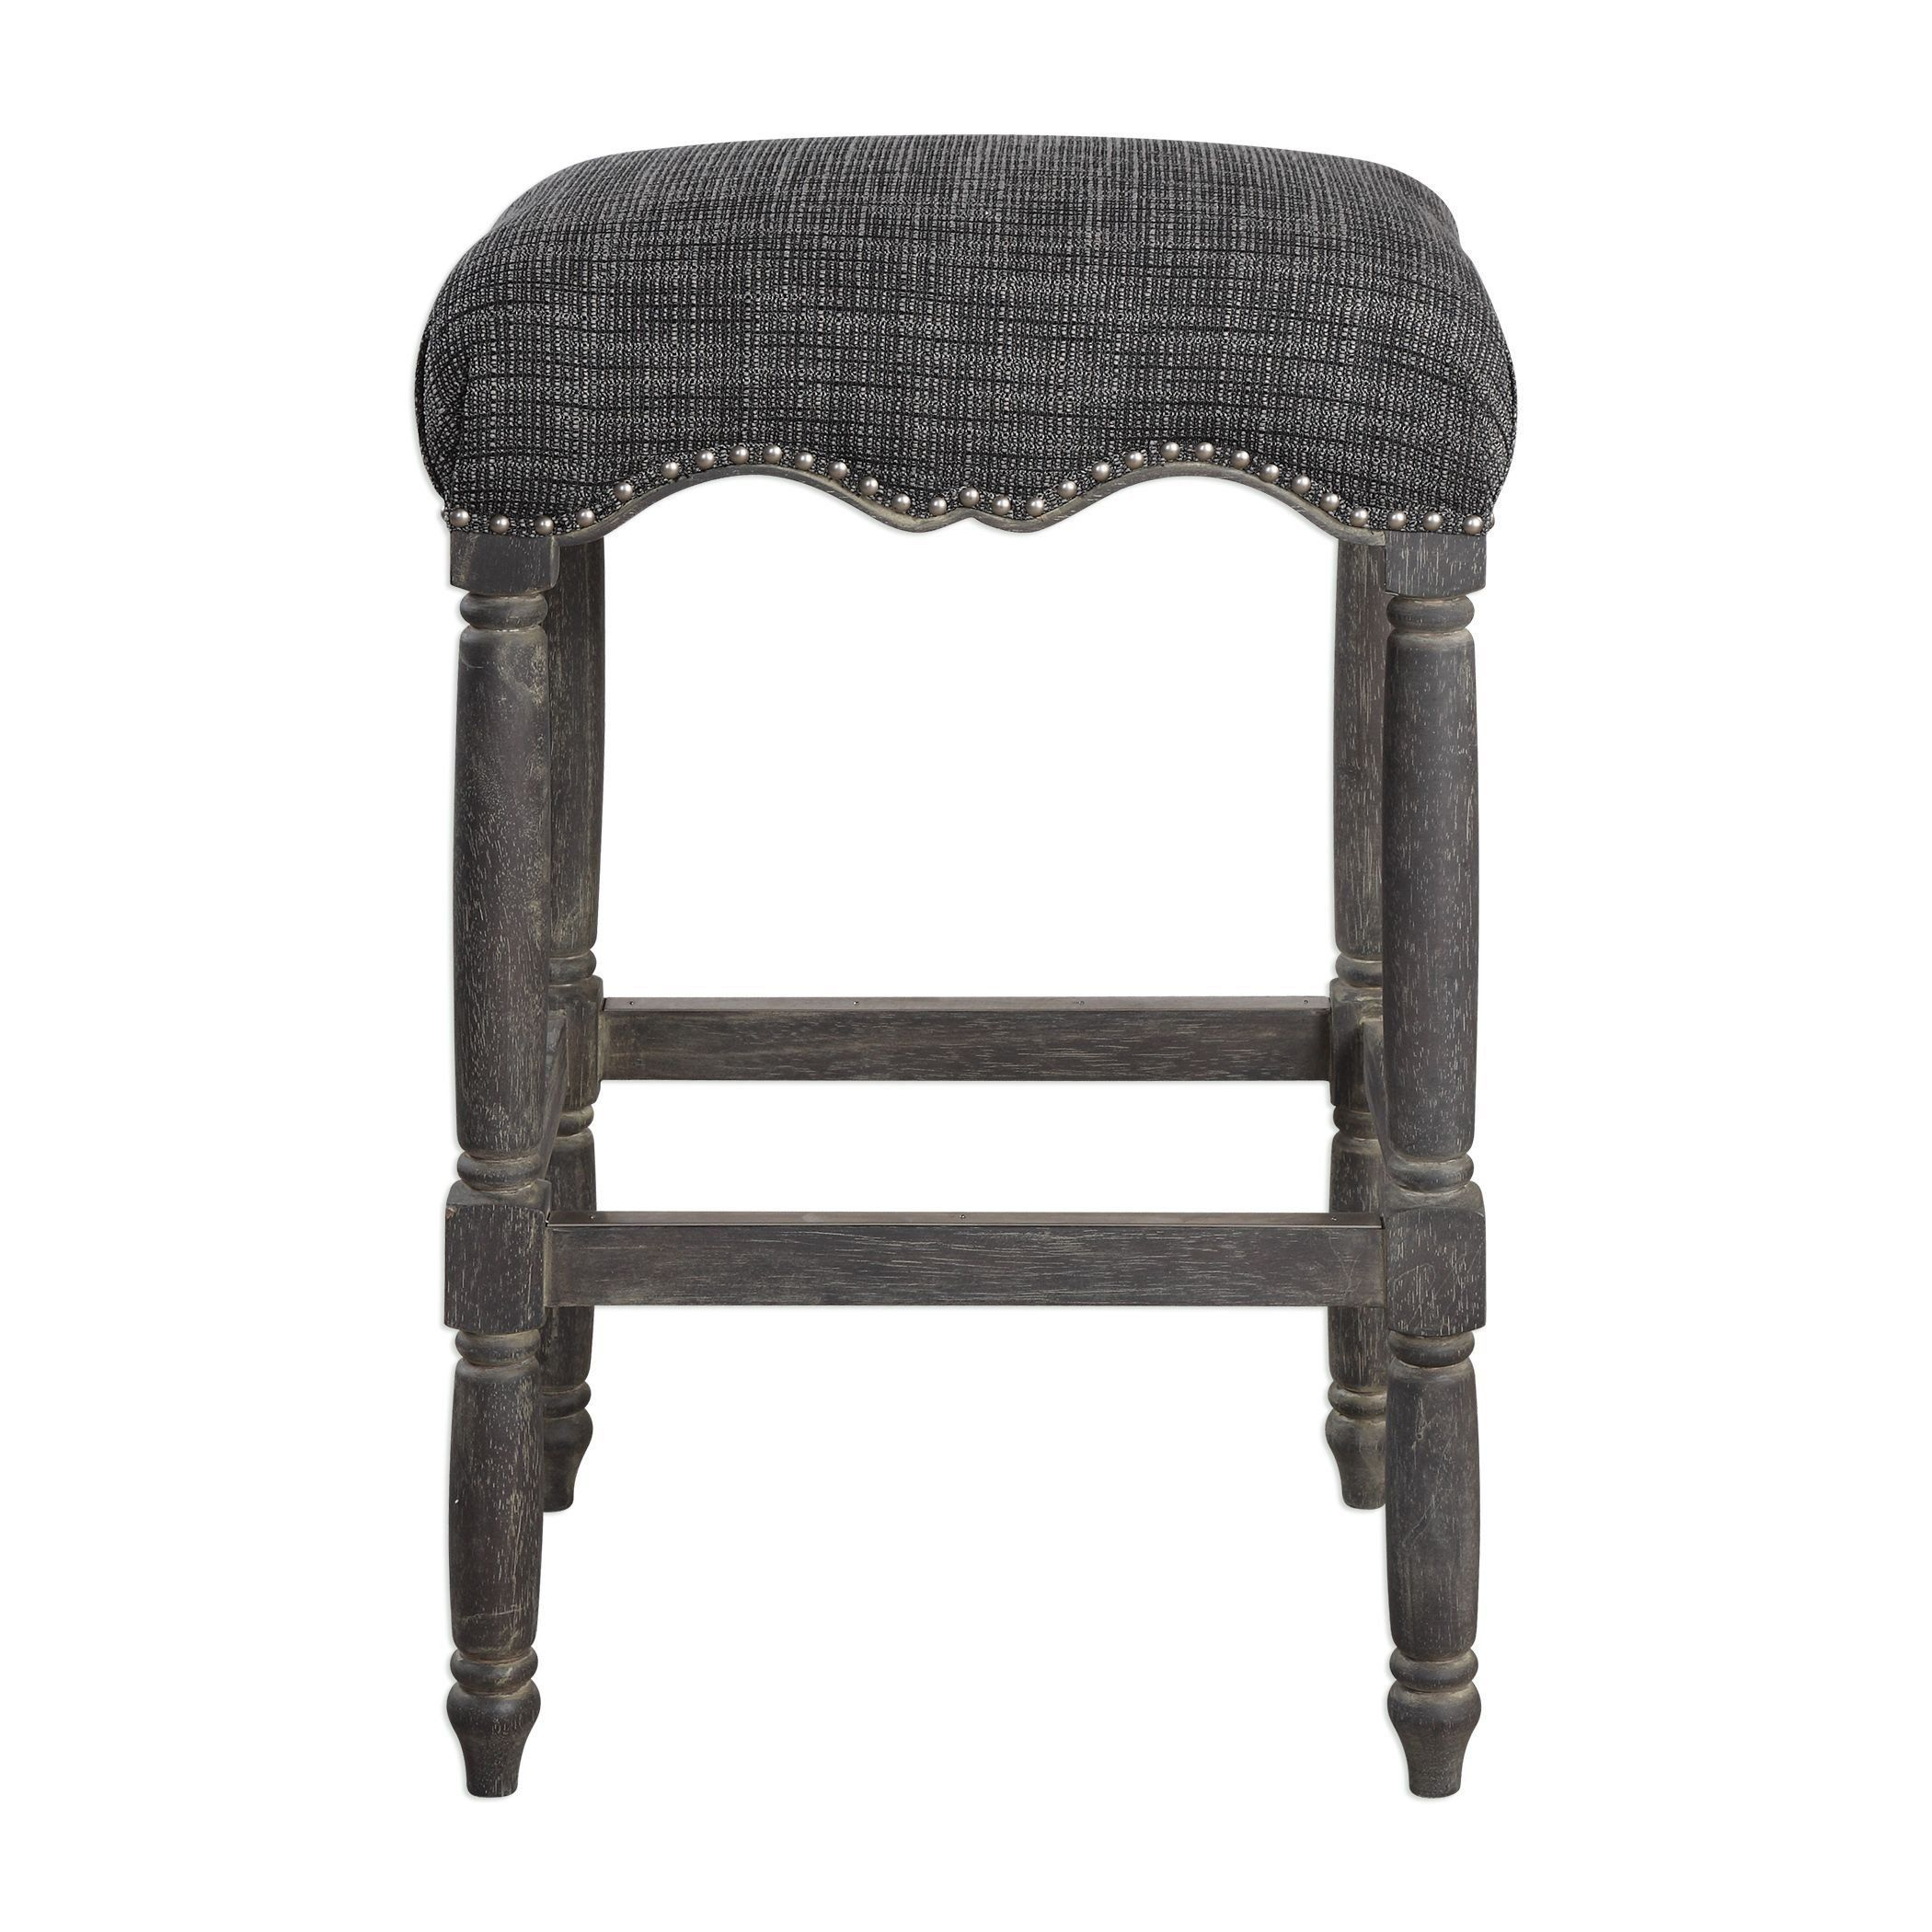 Kitchen Aiden Blue Gray Backless Bar Stool By Uttermost Grey Bar Stools Backless Bar Stools Wood Bar Stools